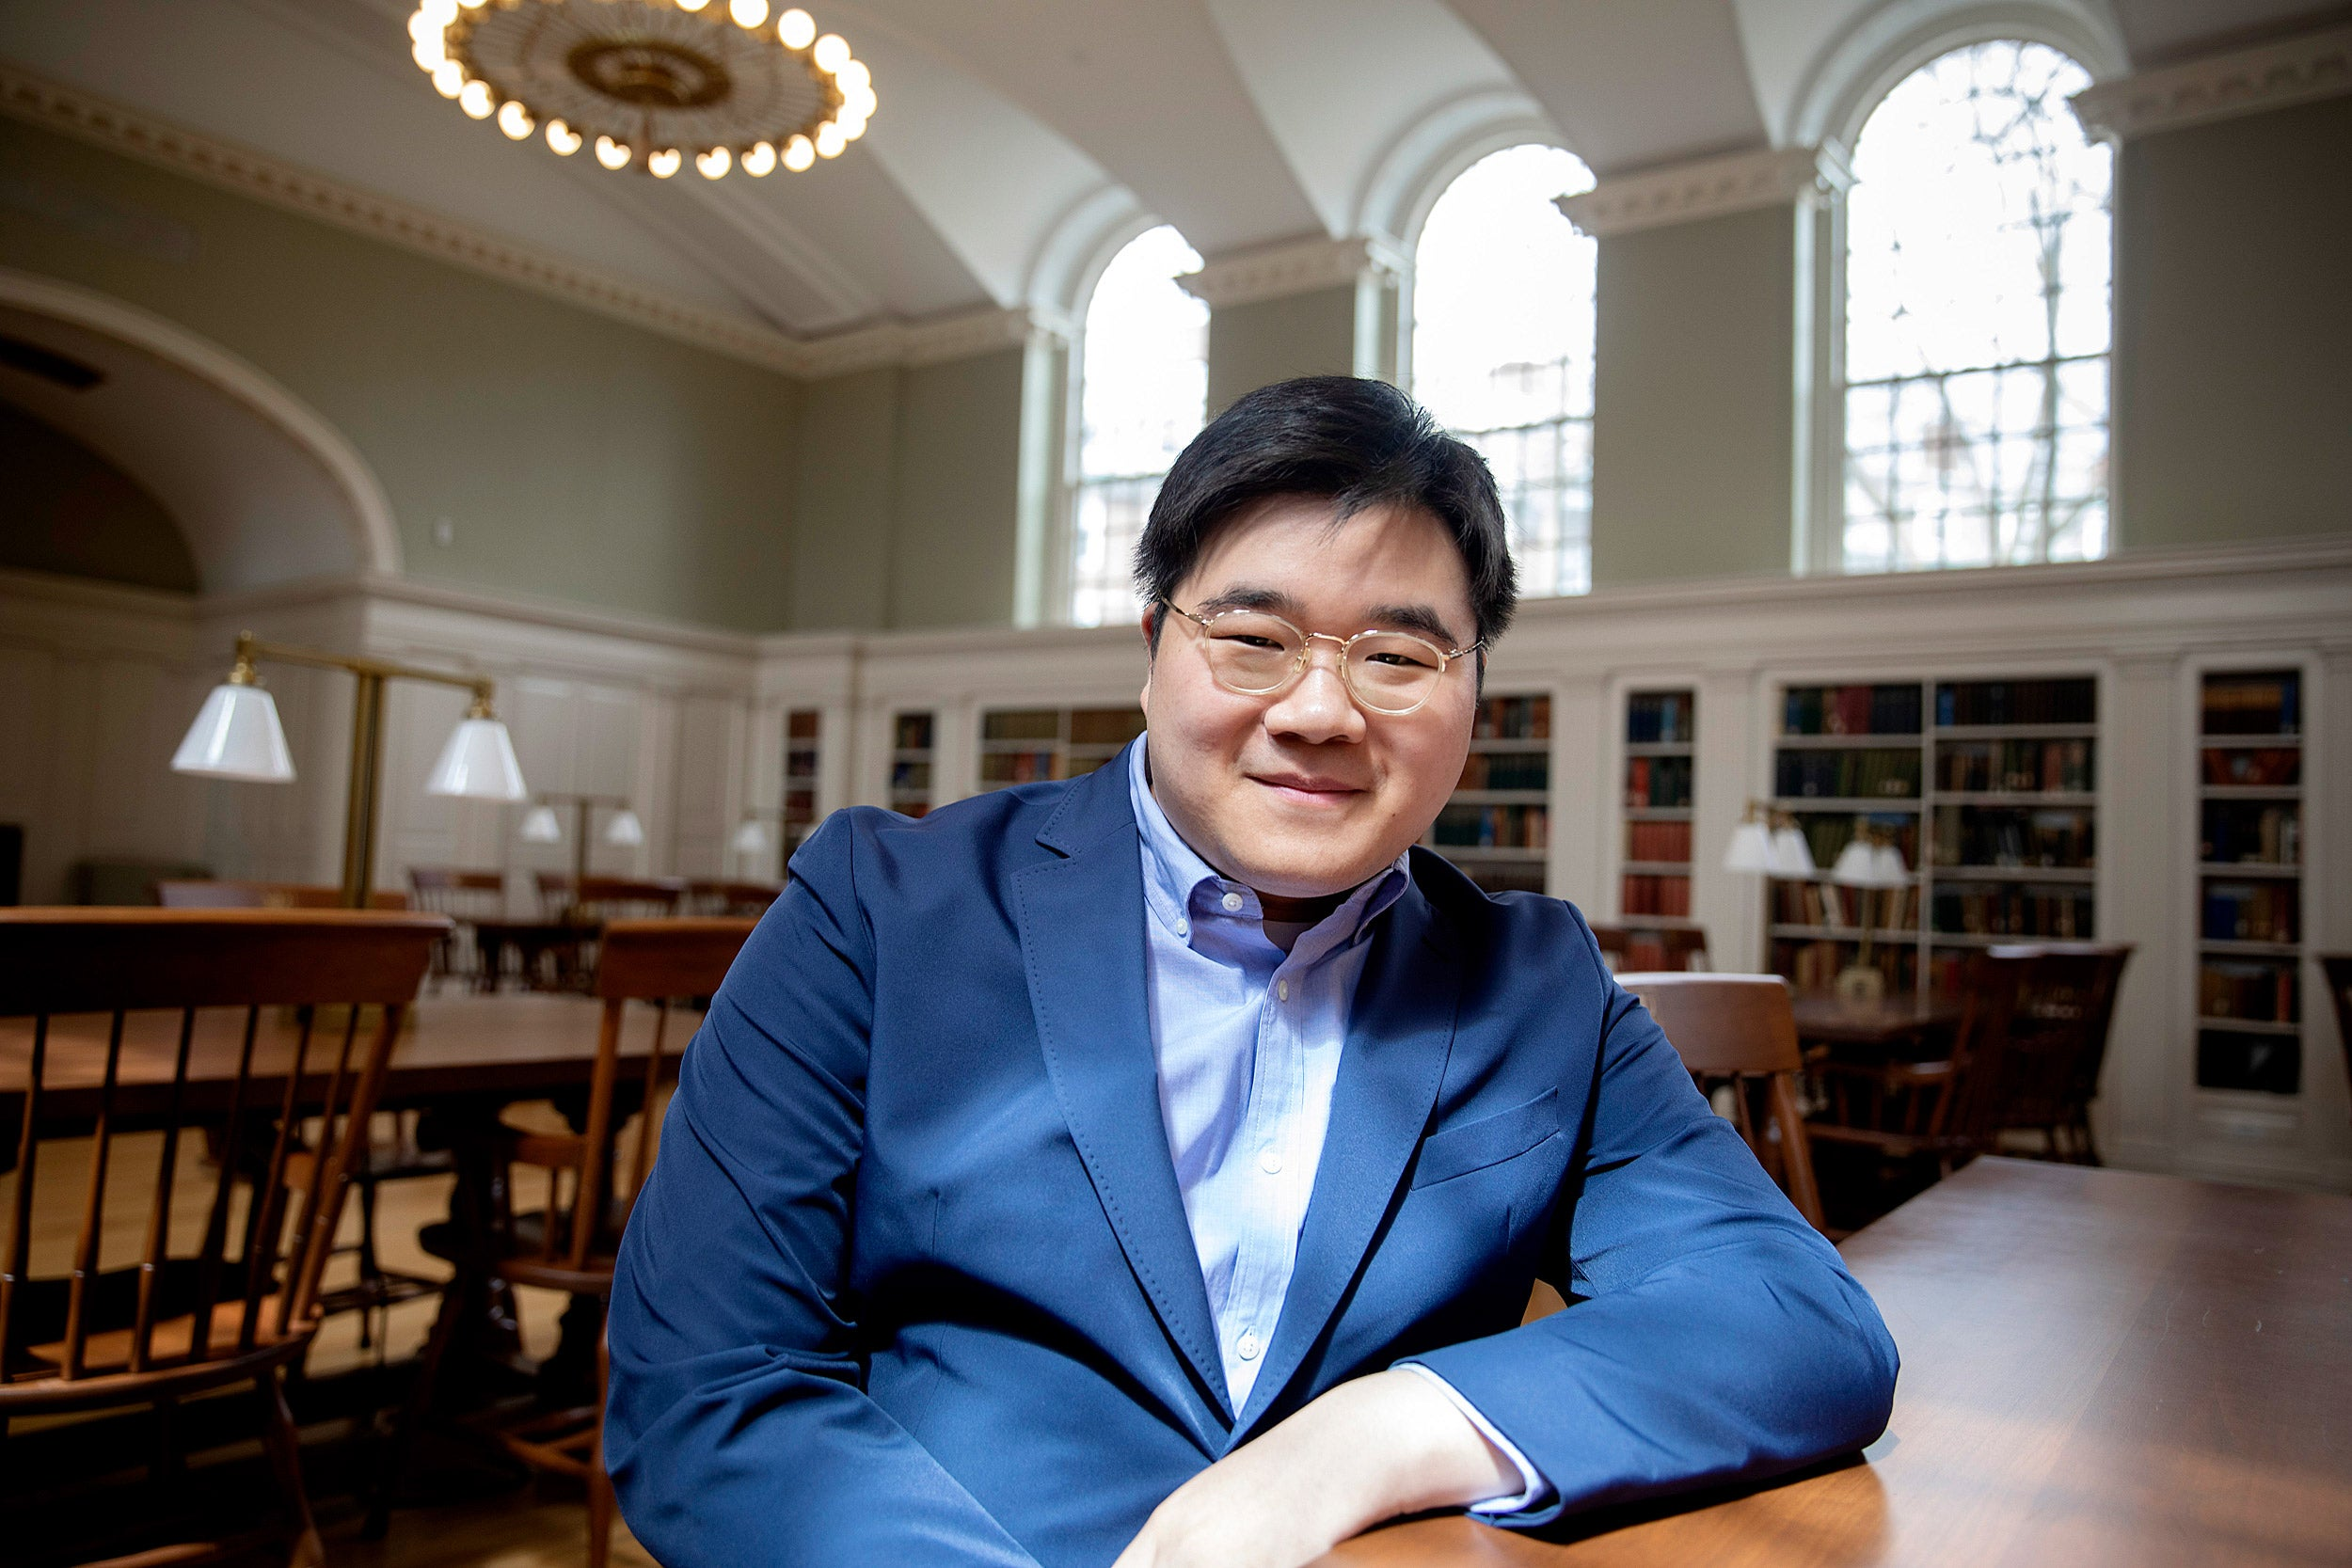 Wonik Son at the library discussing his four years at Harvard.